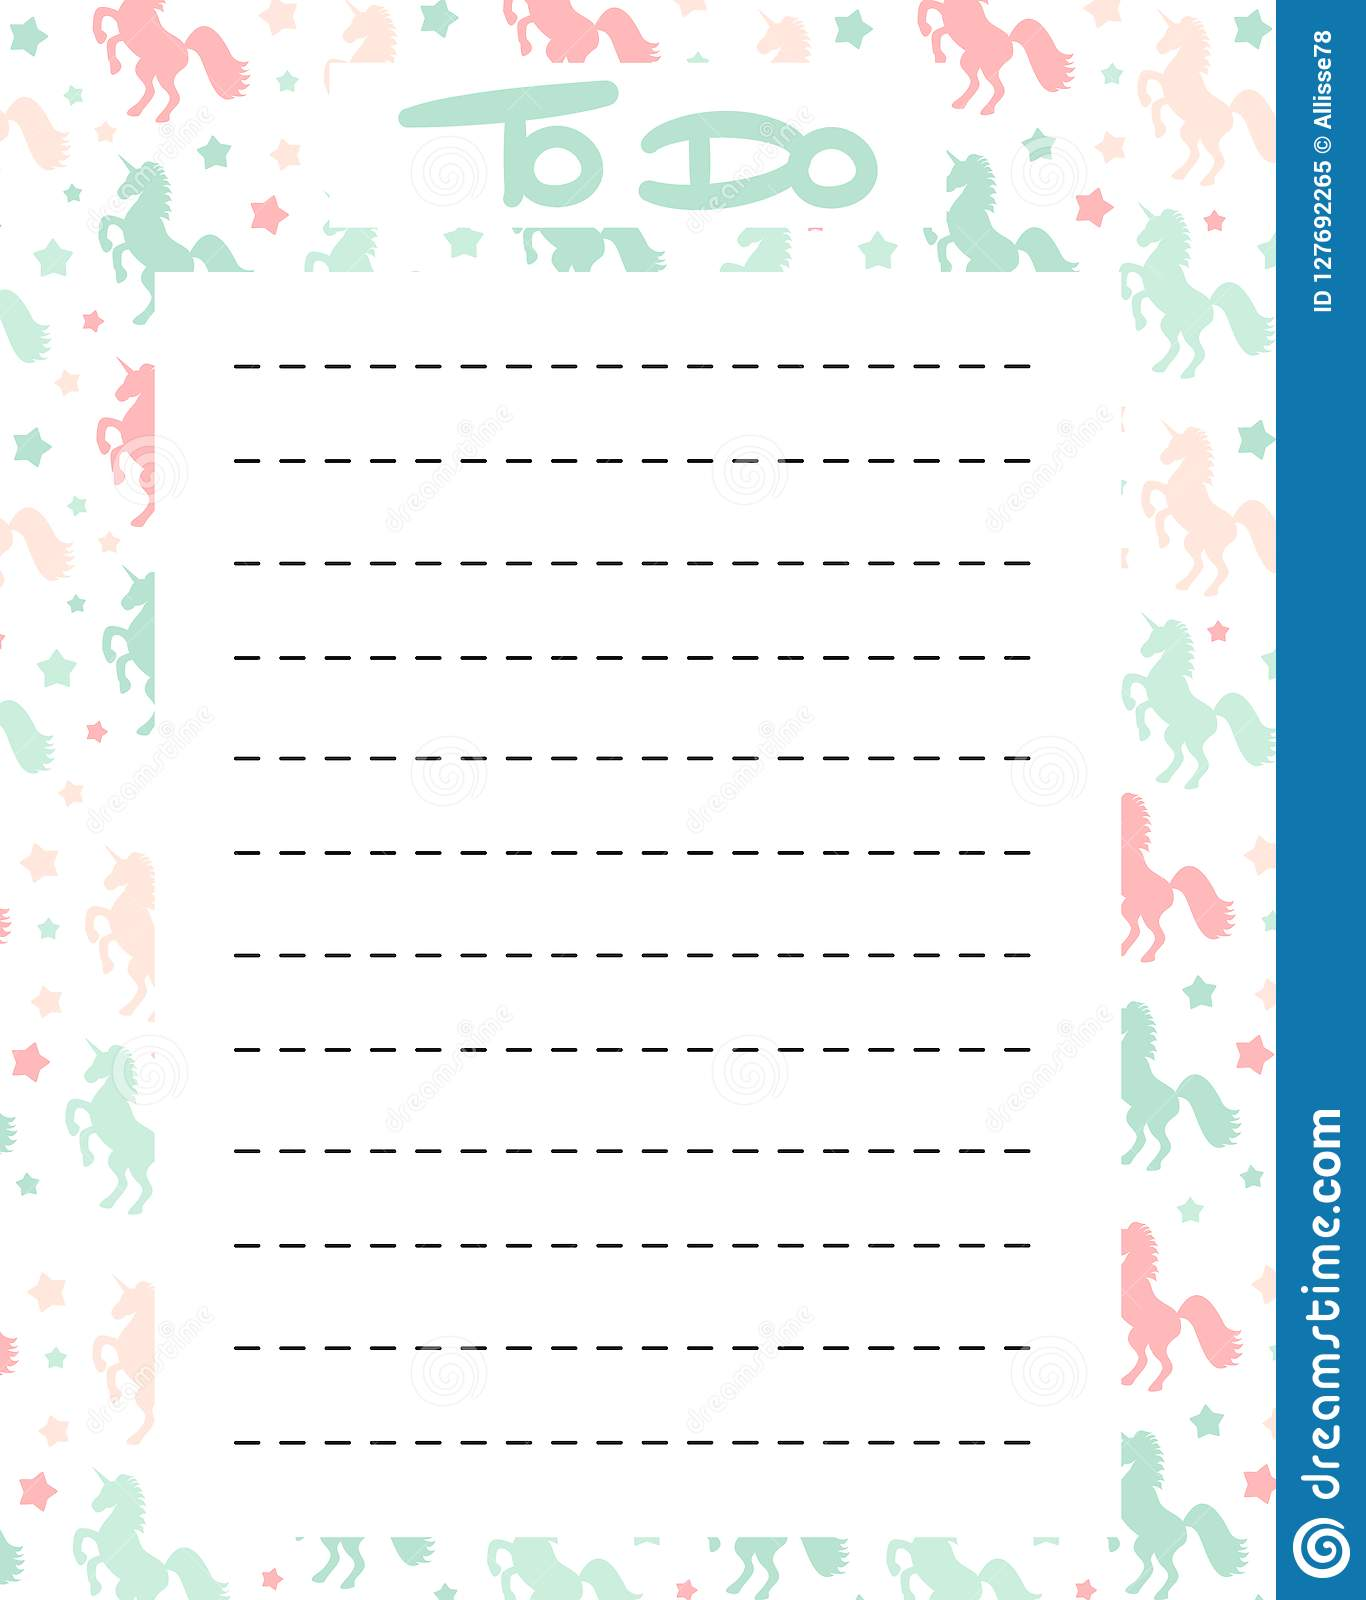 image relating to Cute Printable to Do List named Lovable Towards Do Checklist Vector Printable With Vibrant Unicorns